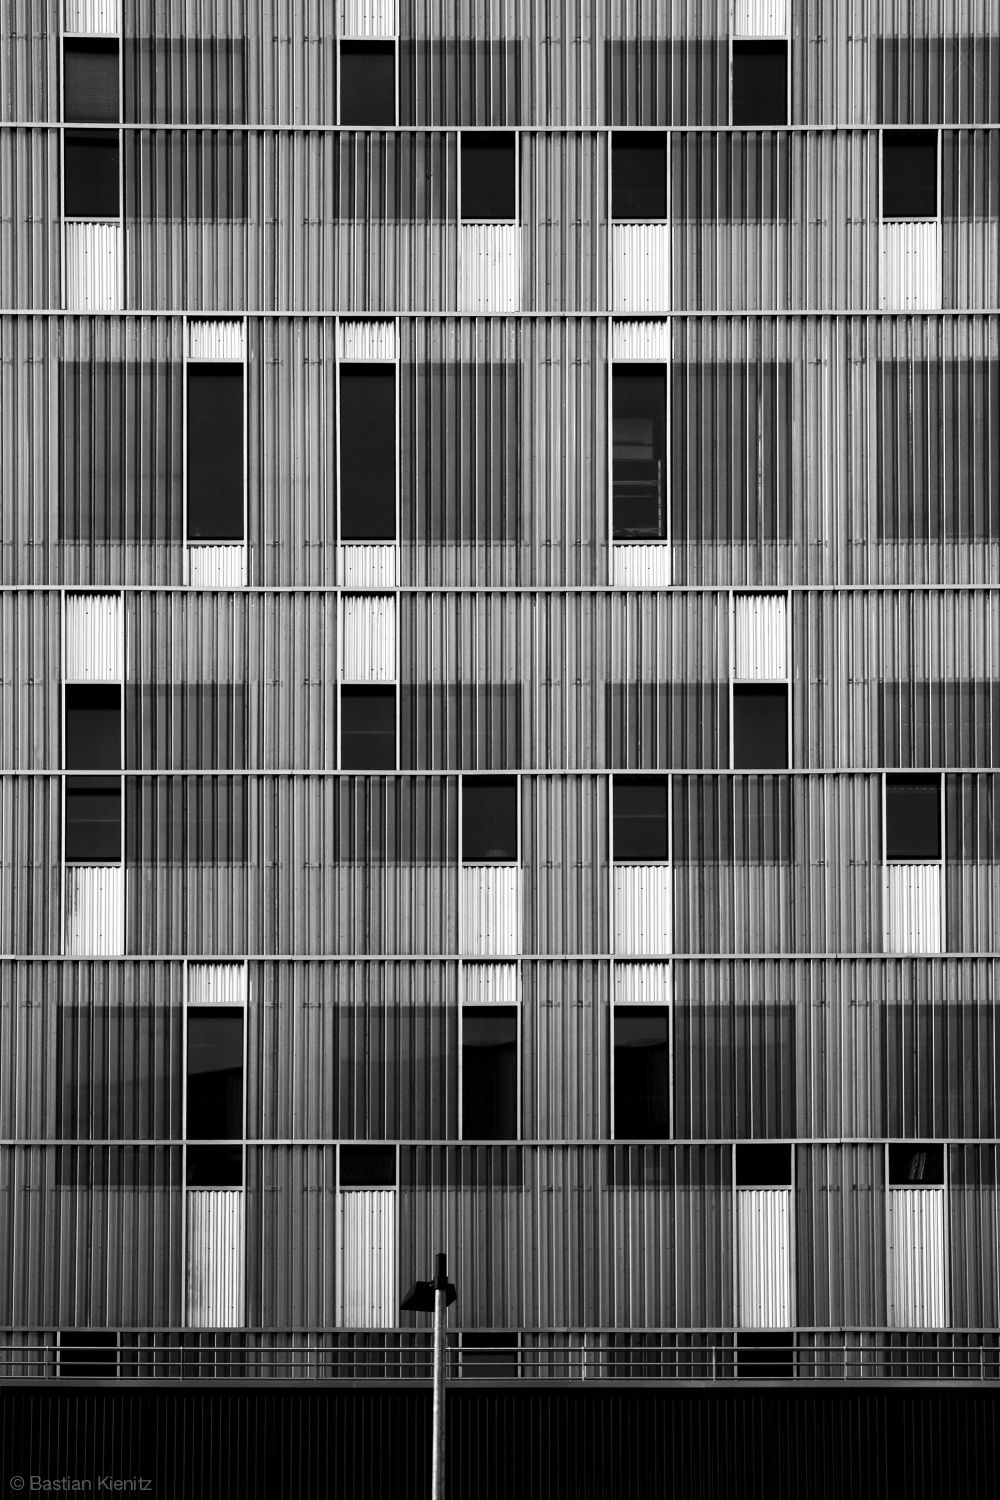 Irregular grid patterns in architecture with contrasting